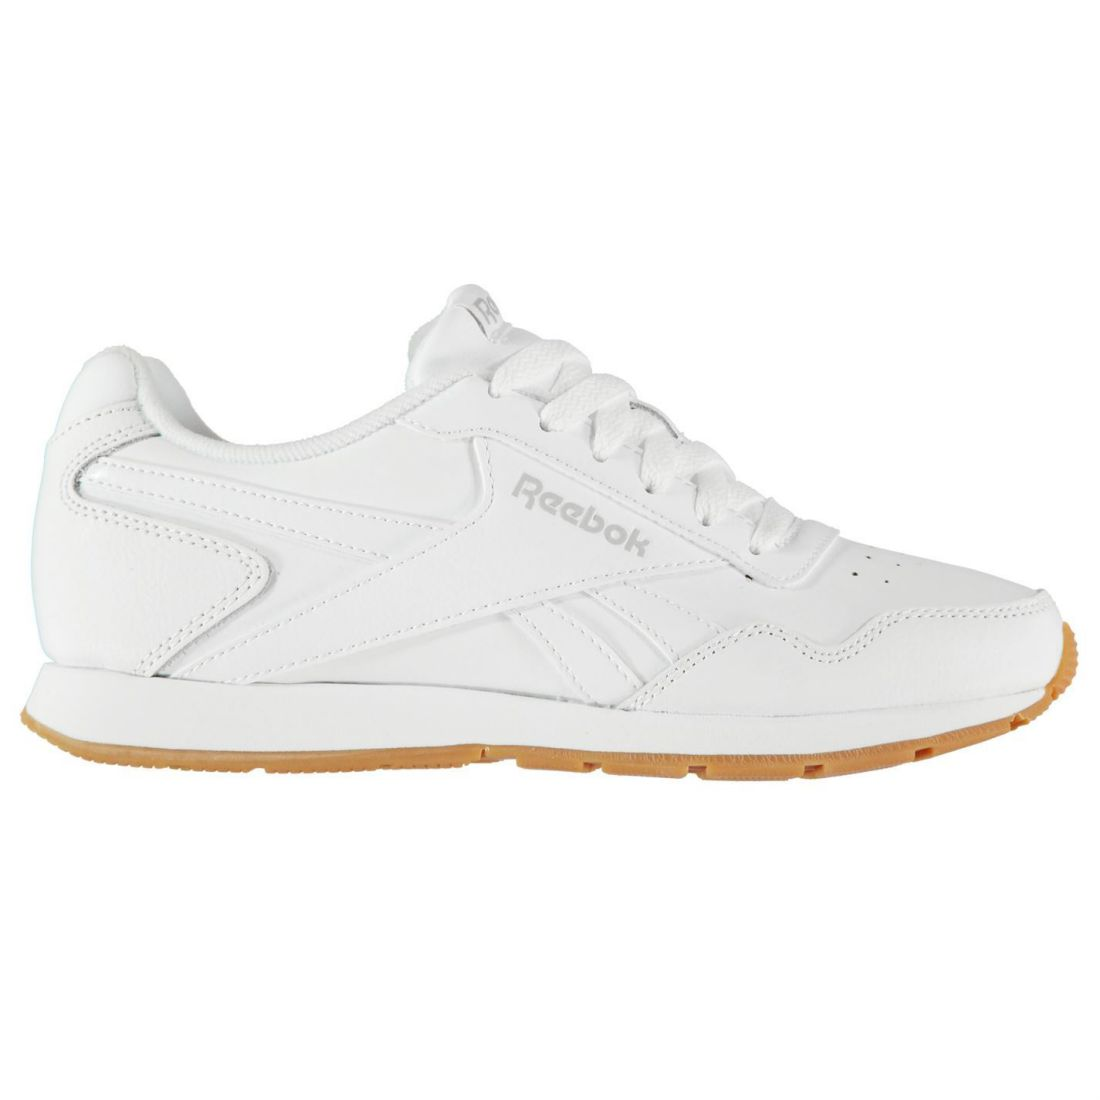 Reebok Glide Sneakers Ladies Classic Laces Fastened Padded Ankle Collar Tongue